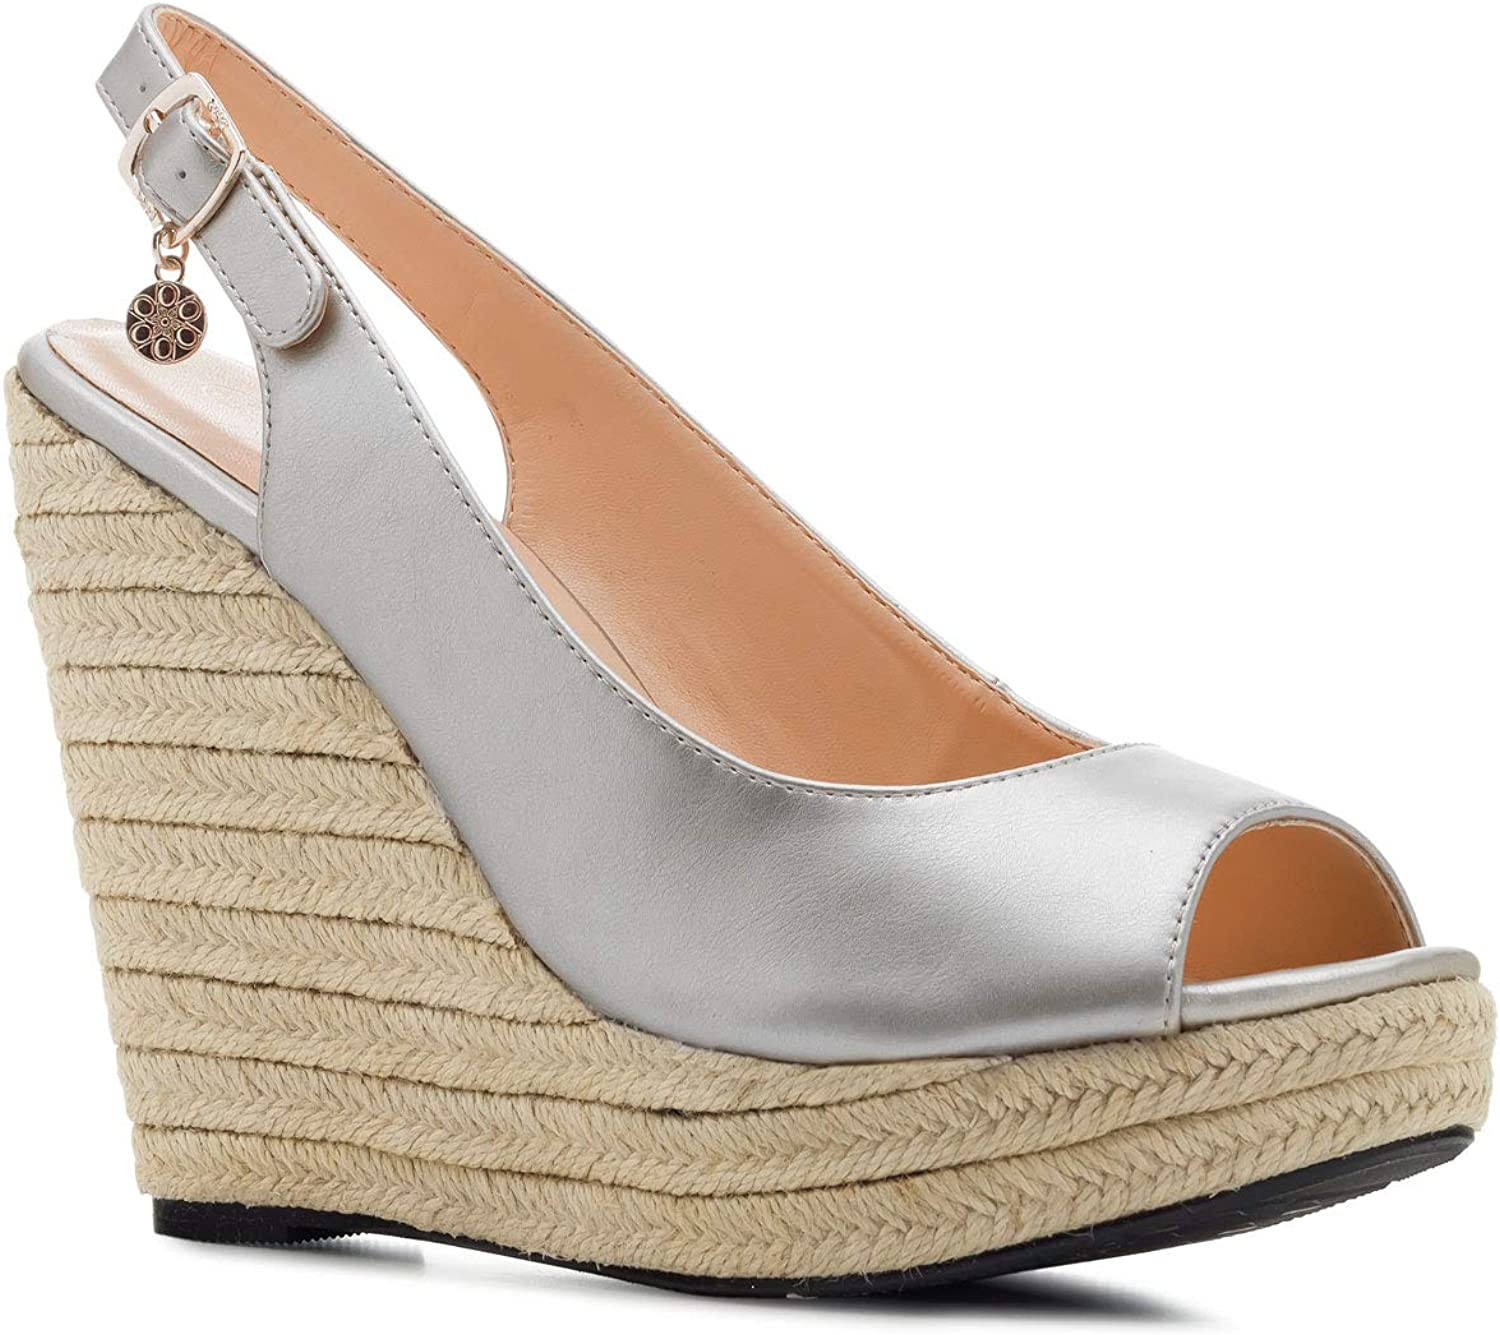 Andres Machado Wedges Shoes for Women